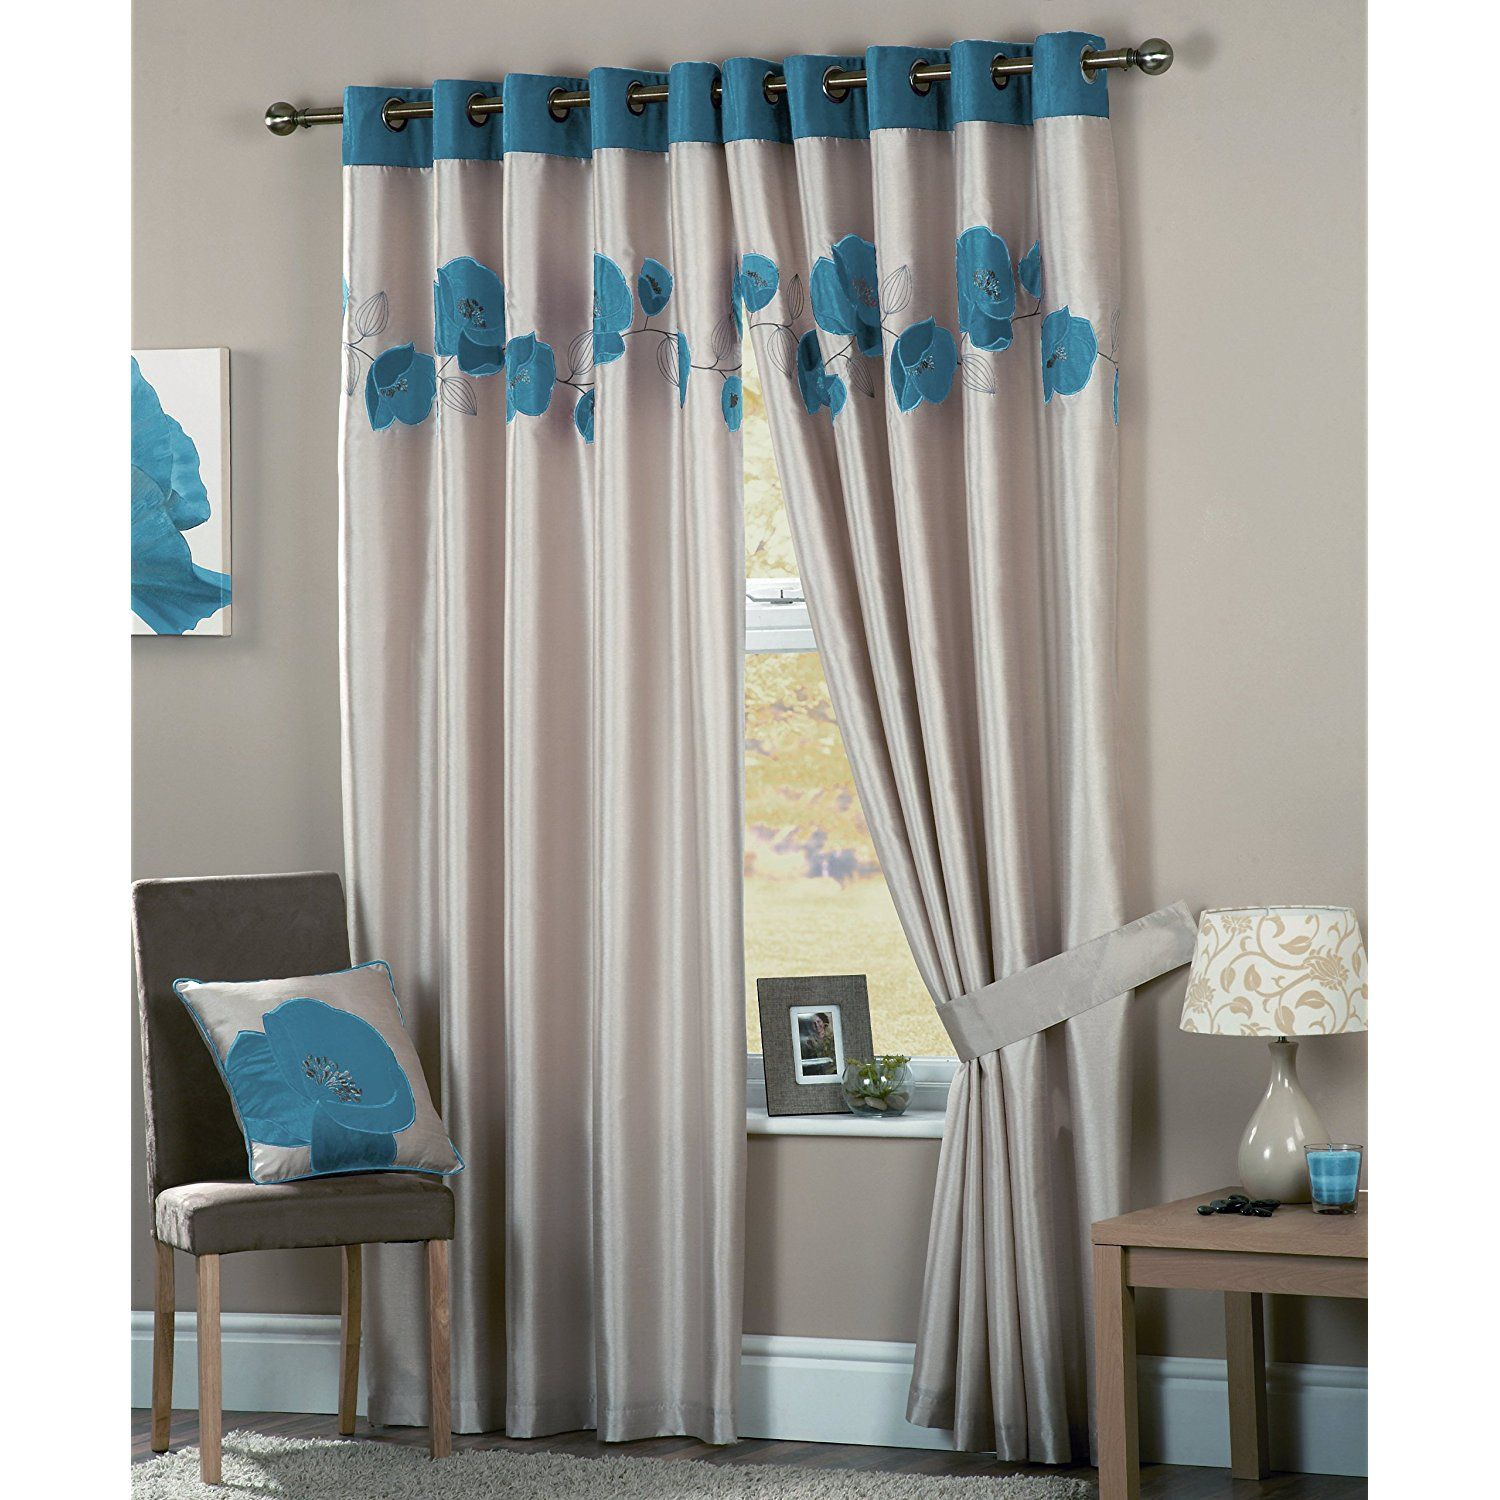 Dotted blue white curtains for modern interior